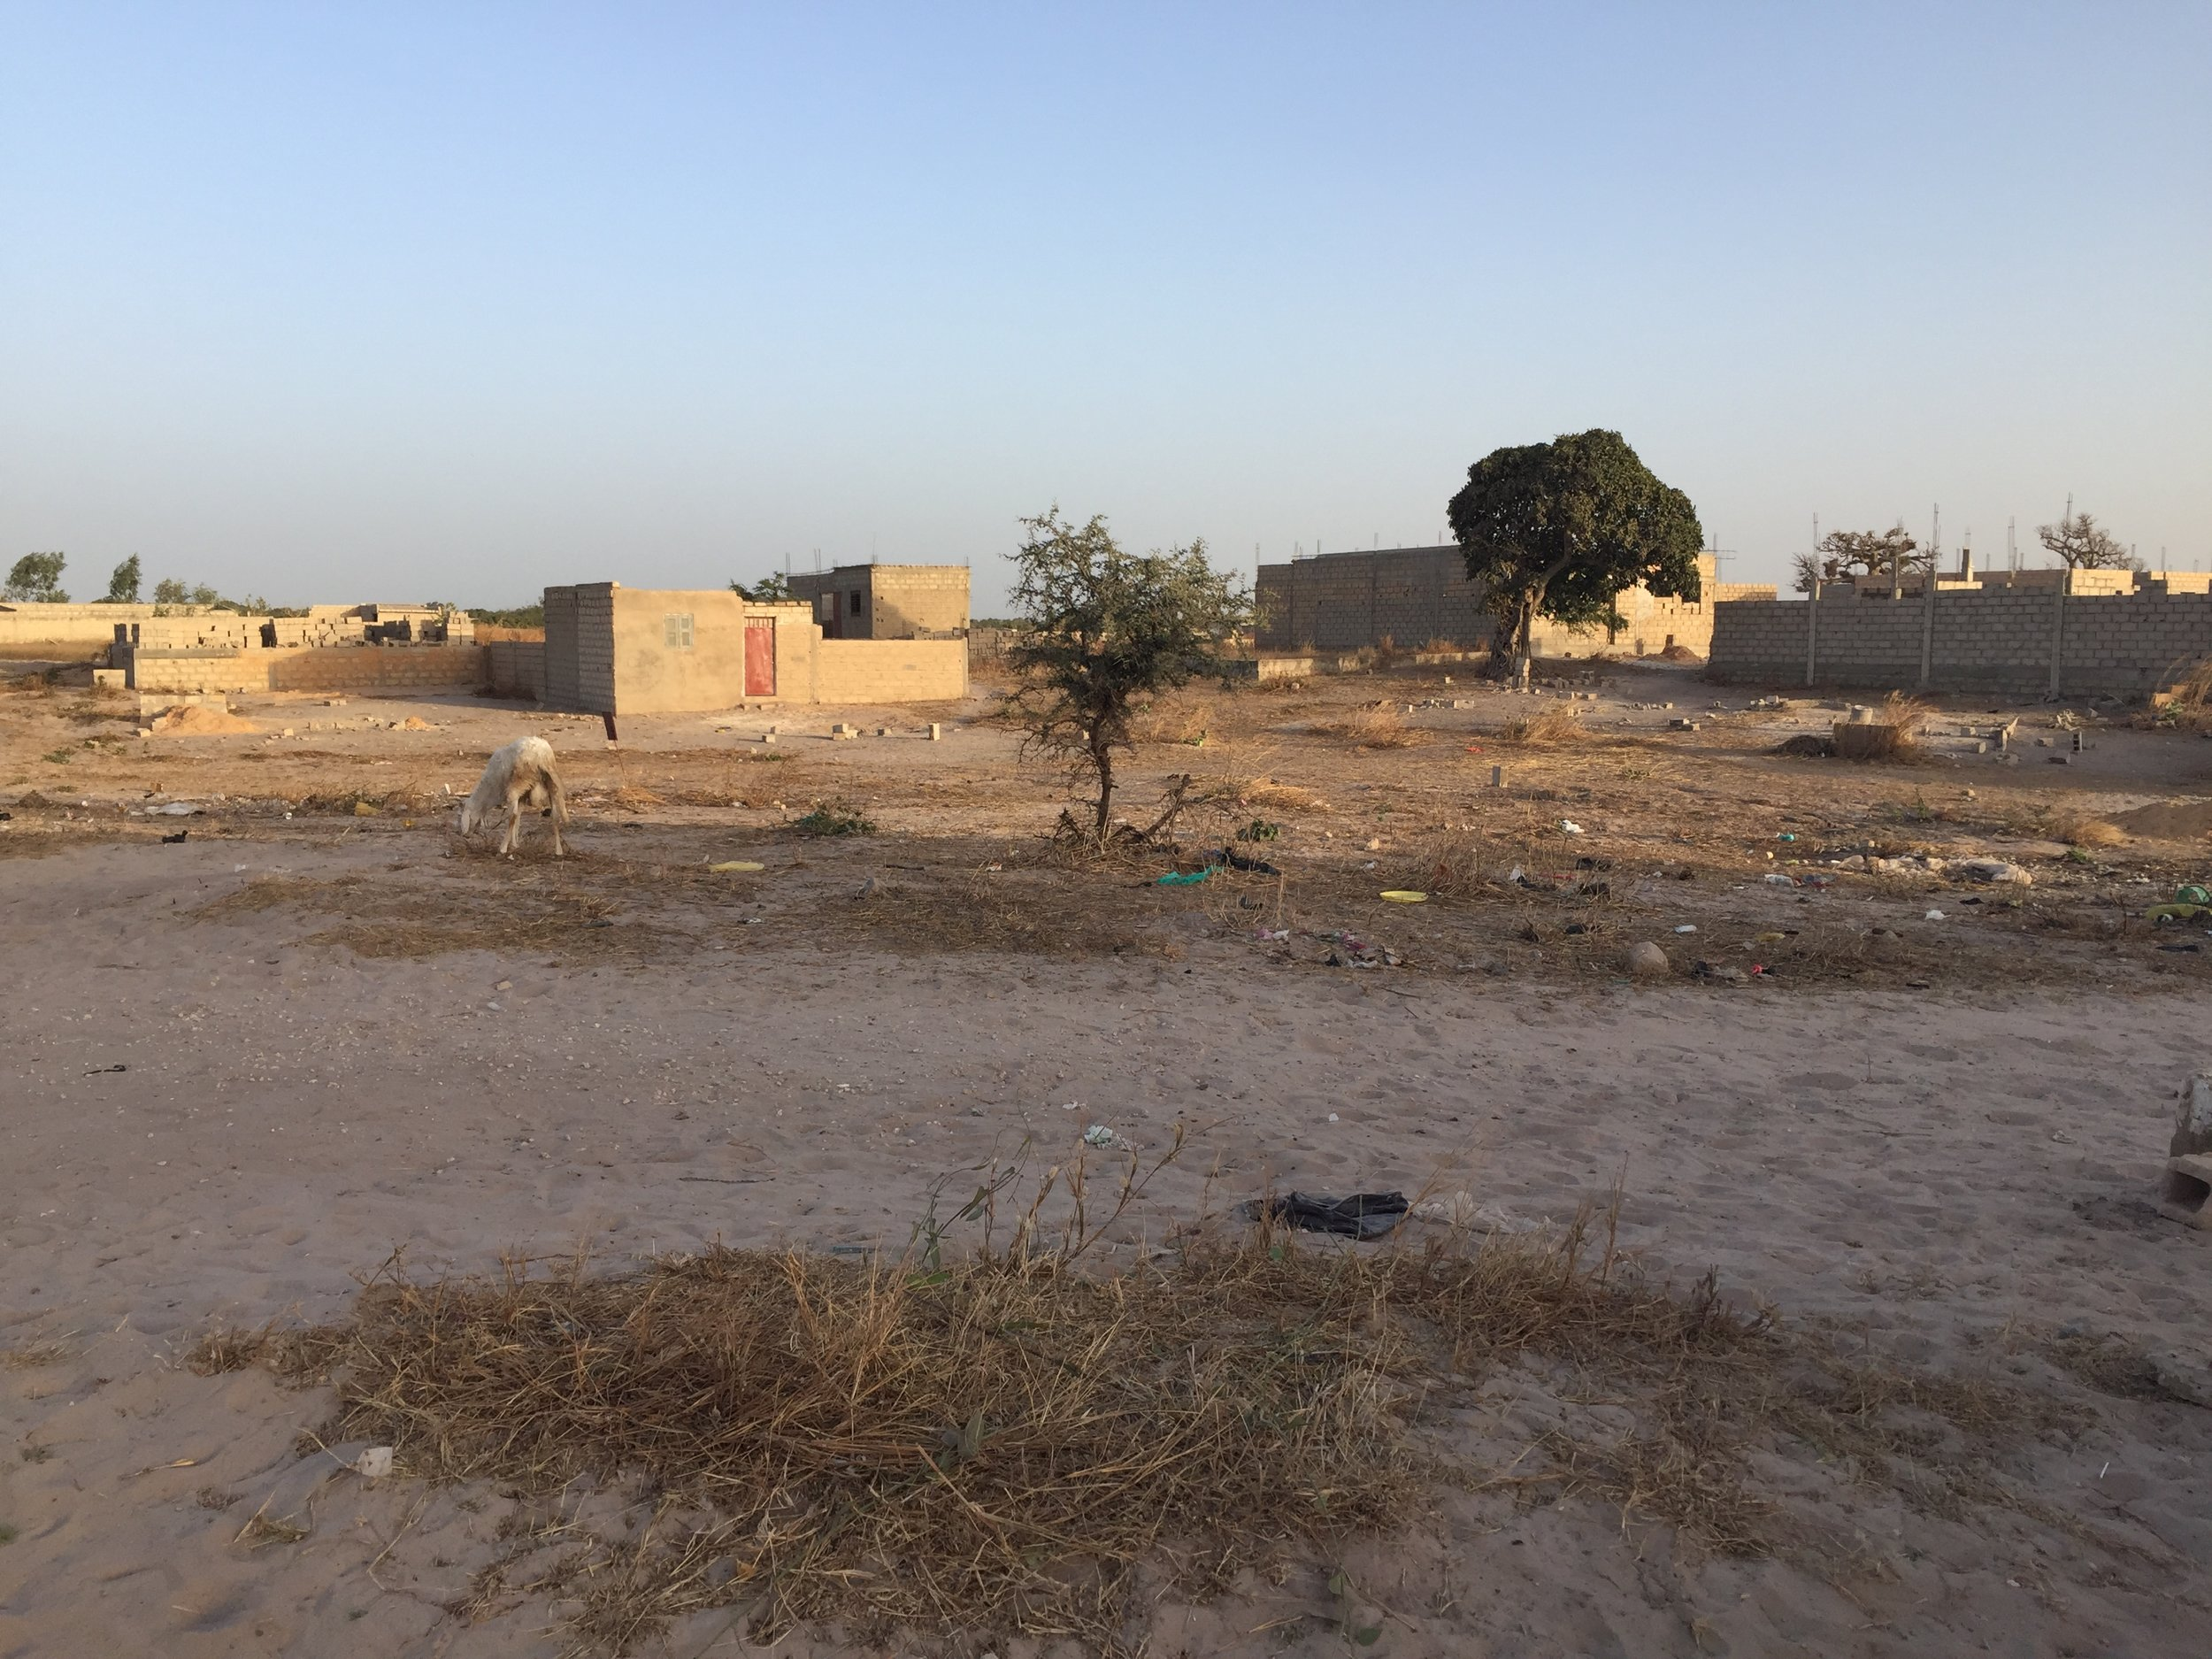 Niakoulrab..Part 2 - LOCATION: NIAKOULRAB, Tivaouane PeulHcountry: SenegalREQUIREment: 3 Classrooms type: elementary schoolCONSTRUCTION: 2019MATERIALs: Sand